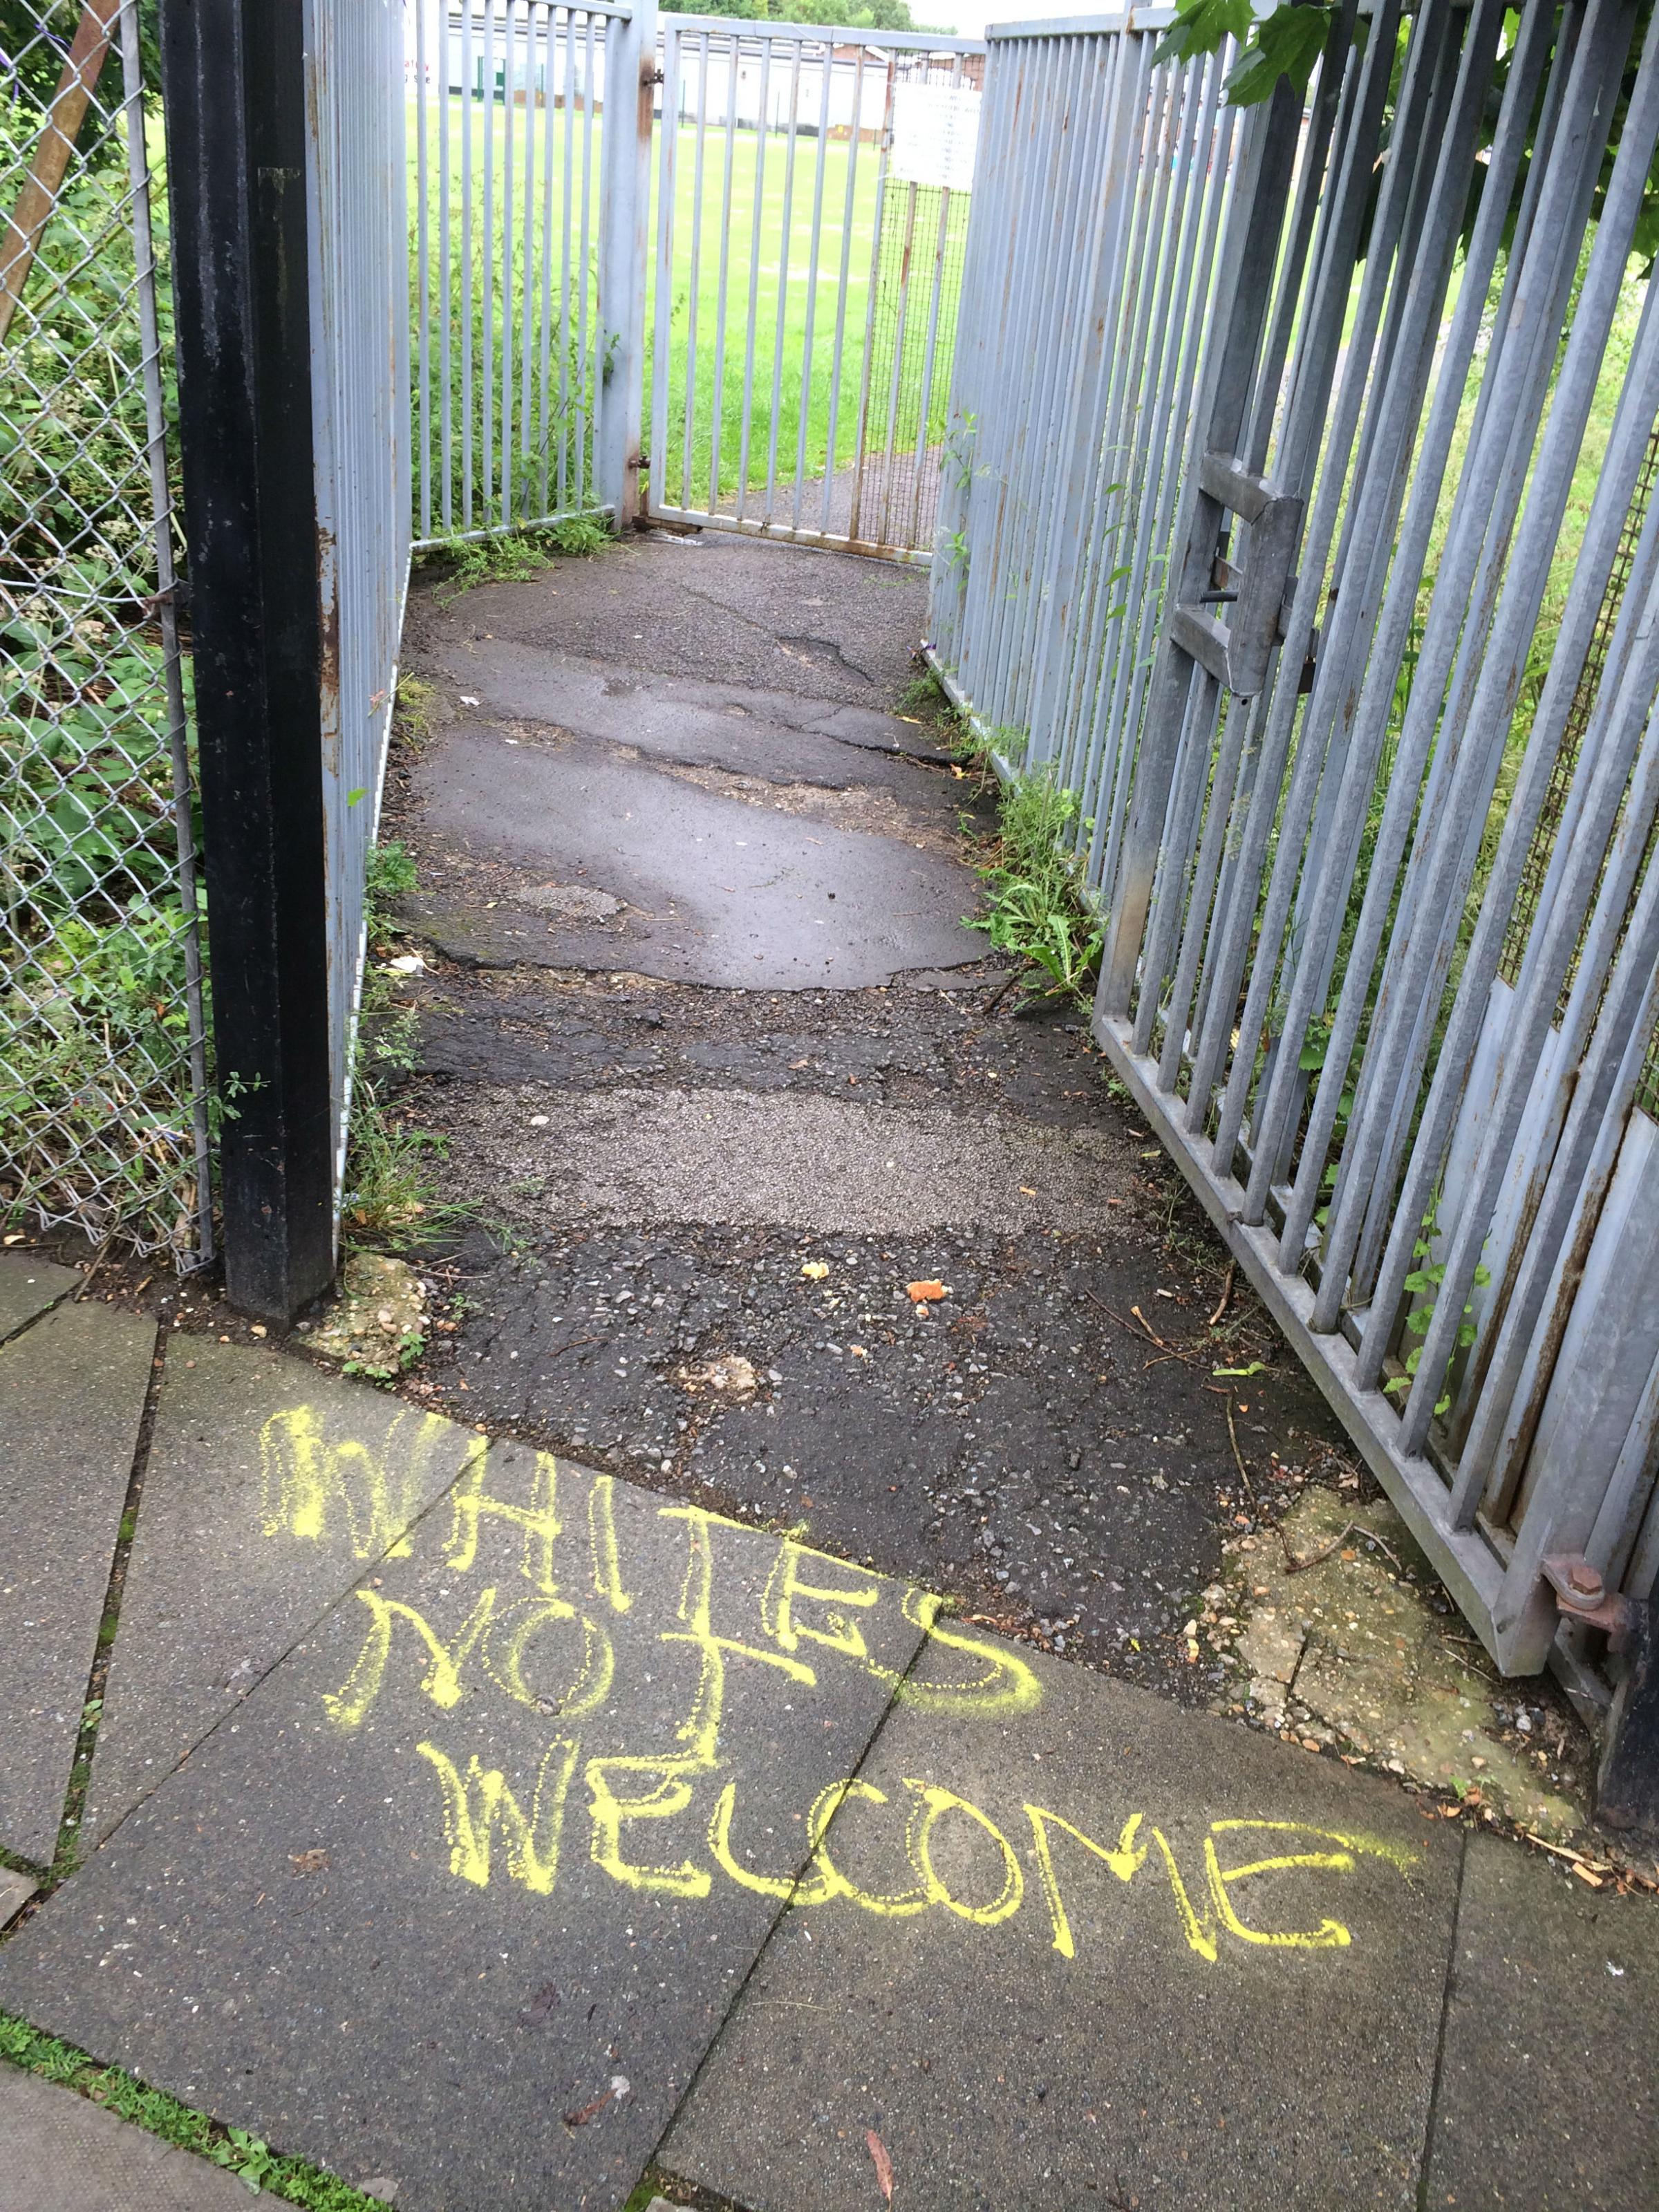 Whites not welcome graf